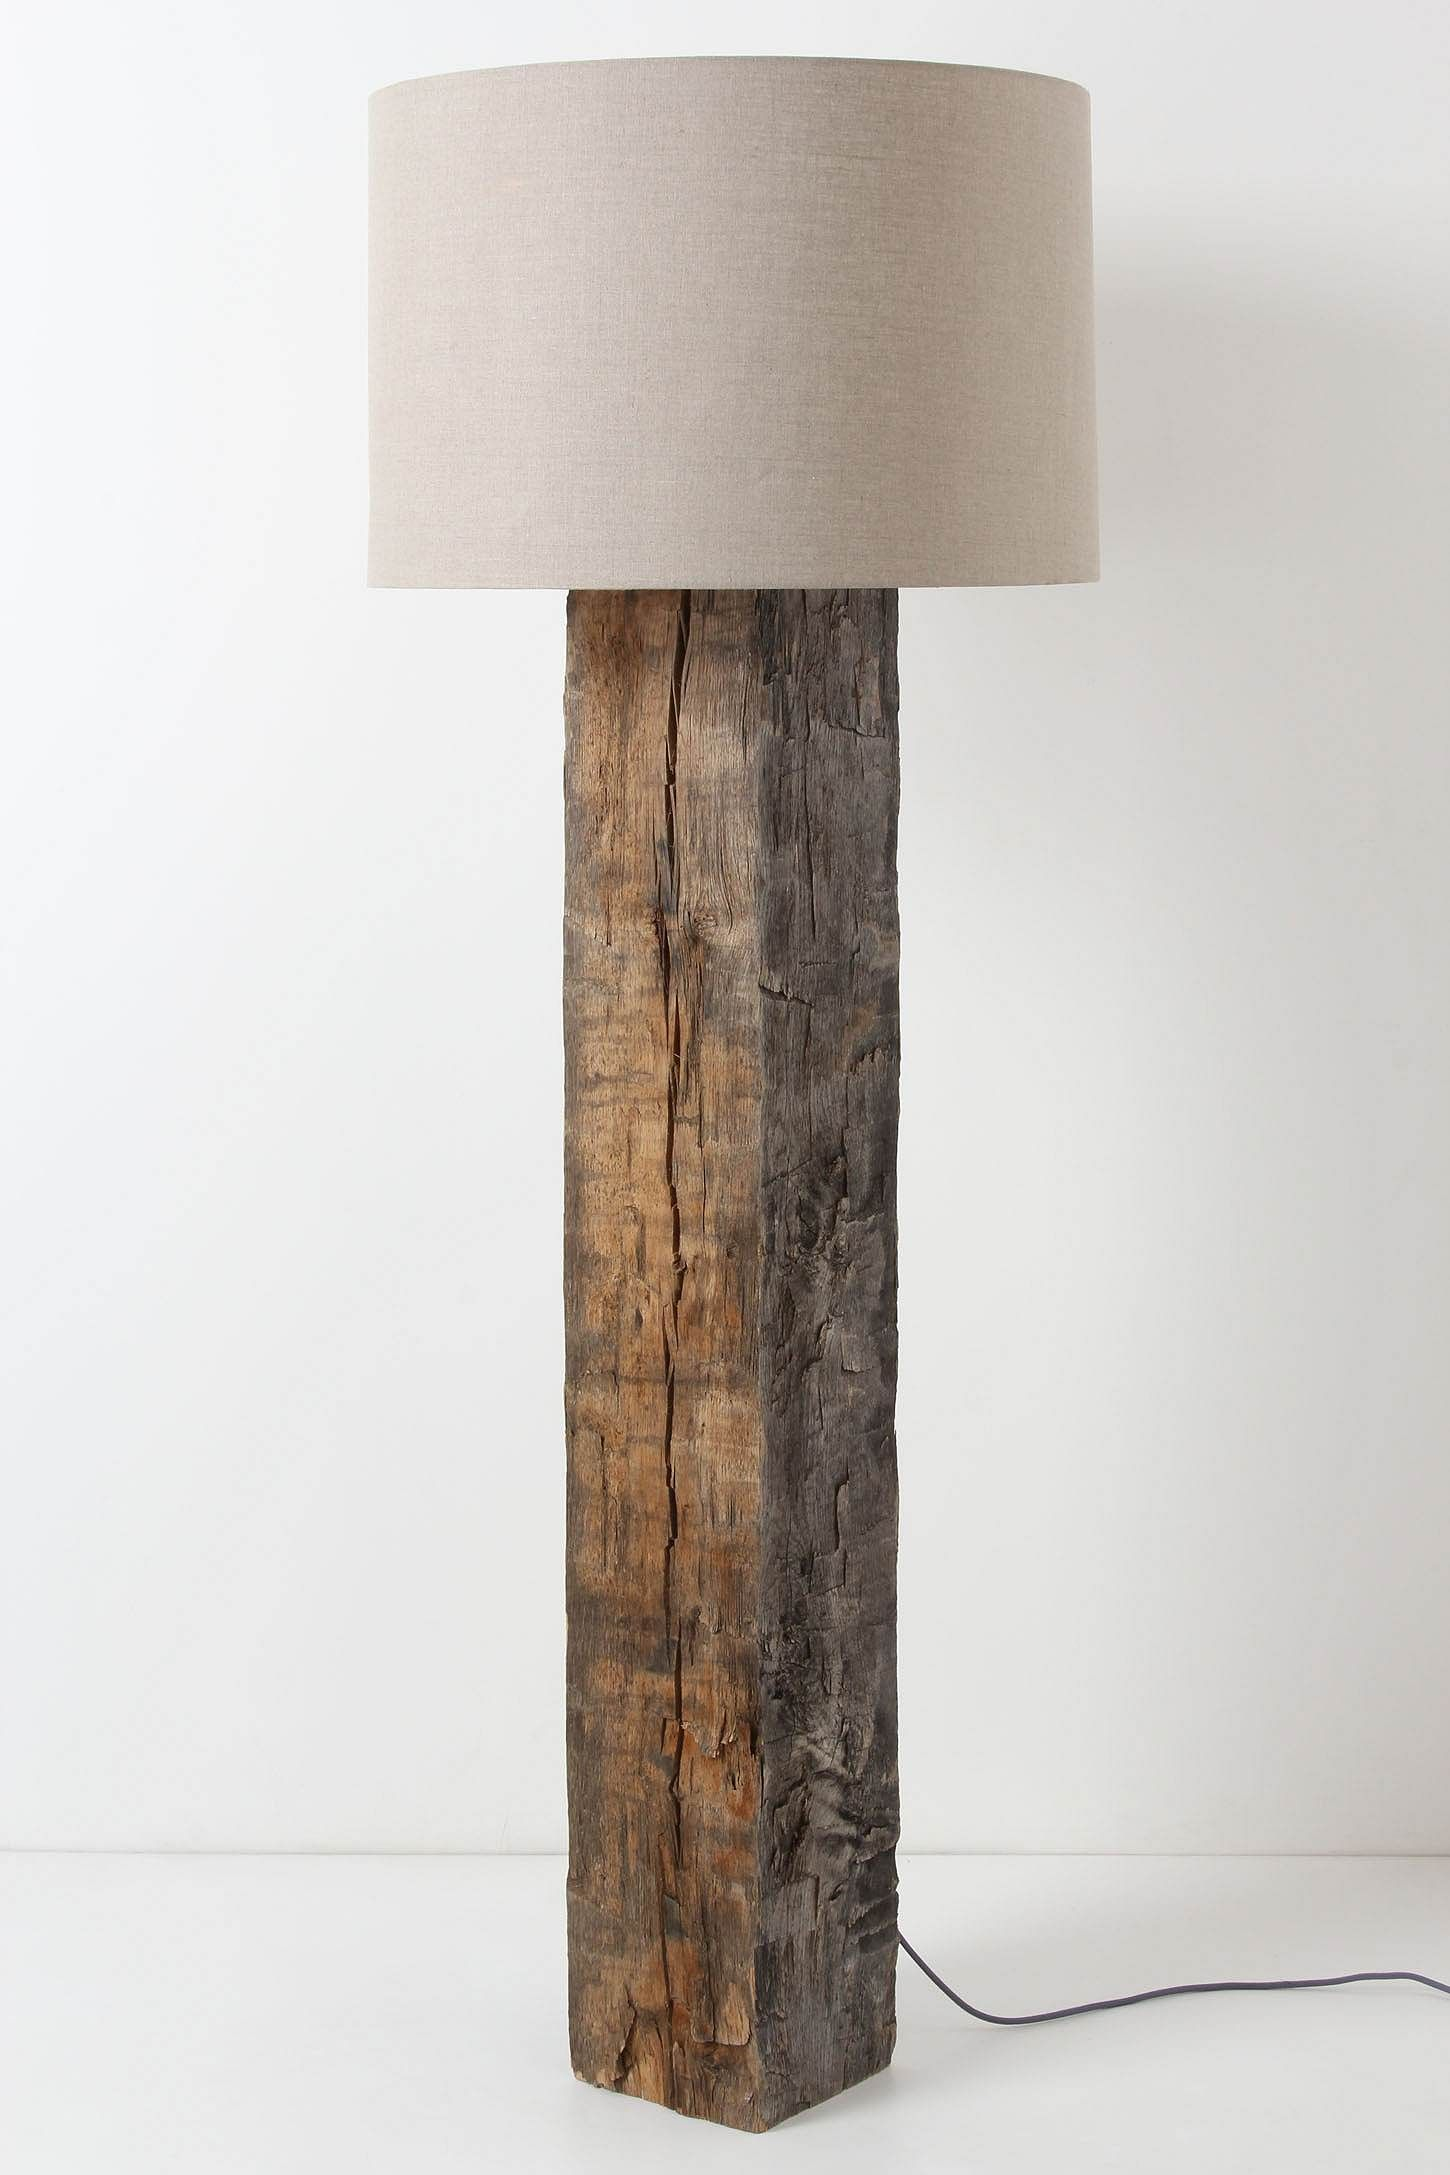 Gwinnett Floor Lamp Rustic Floor Lamps Wooden Floor Lamps Wood Floor Lamp